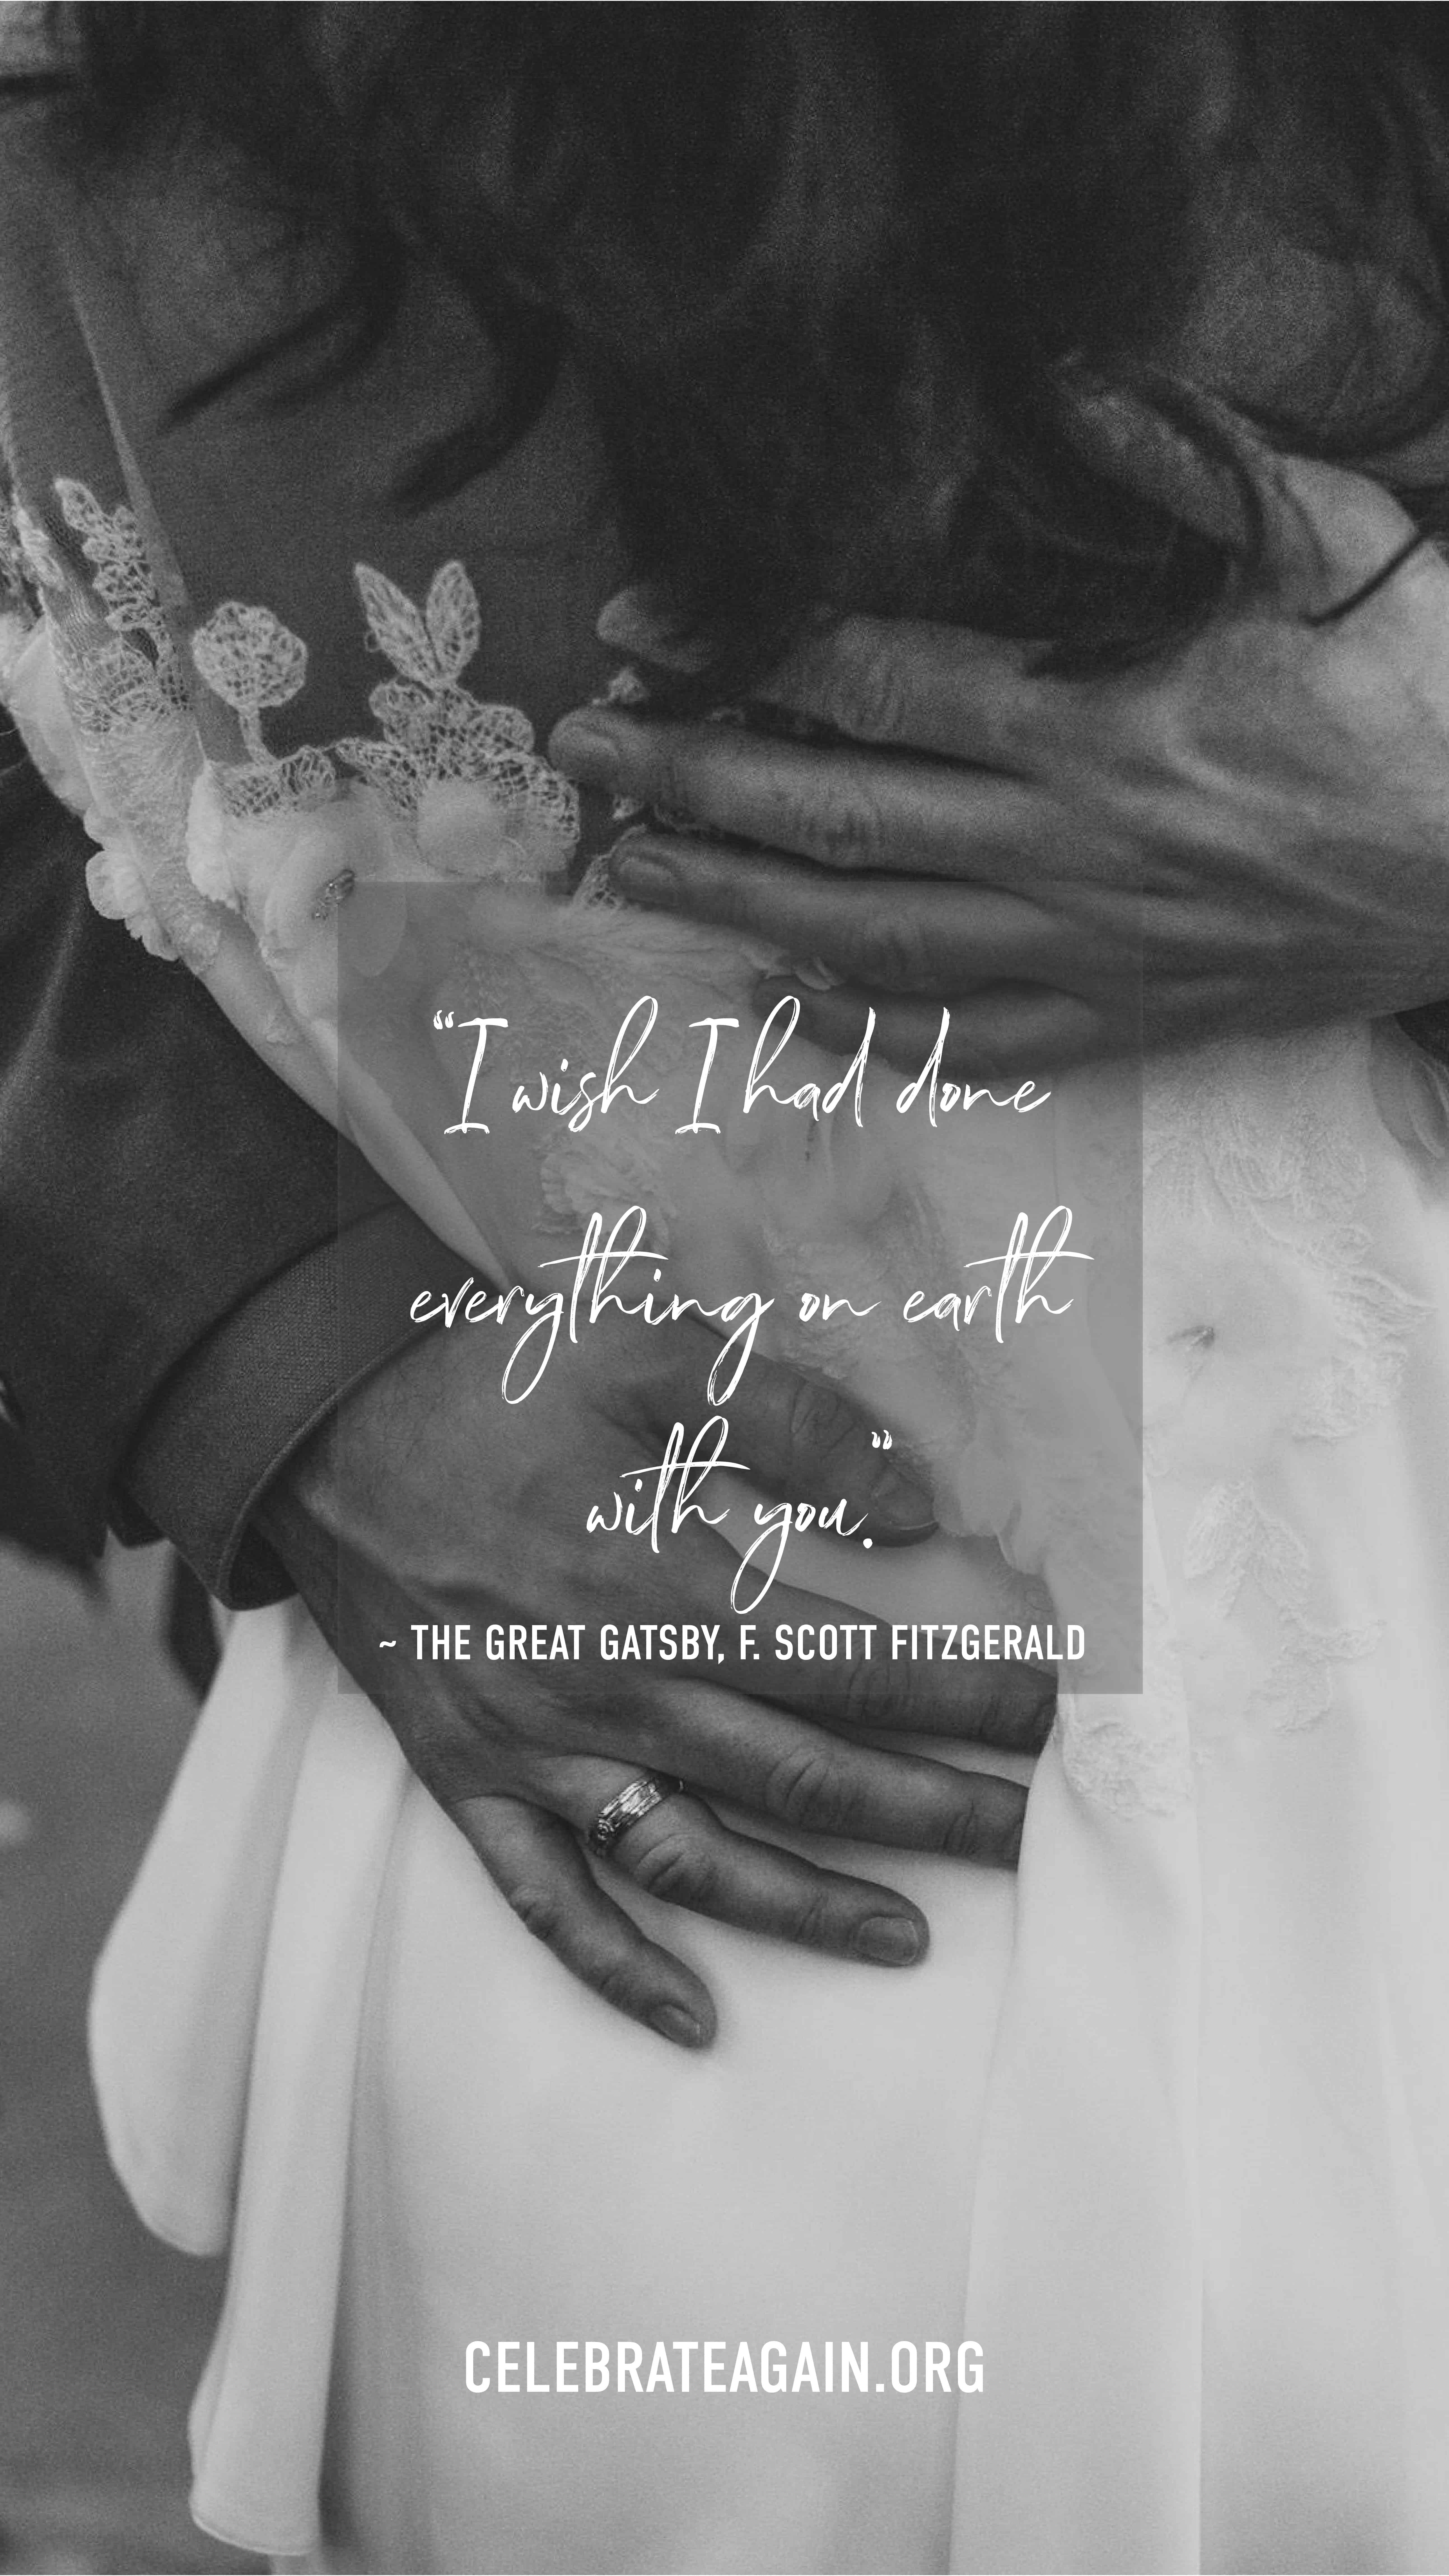 """""""I wish I had done everything on earth with you."""" - The Great Gatsby by F. Scott Fitzgerald, romantic love quote image of grooms hands around brides back, image by celebrateagain.org"""